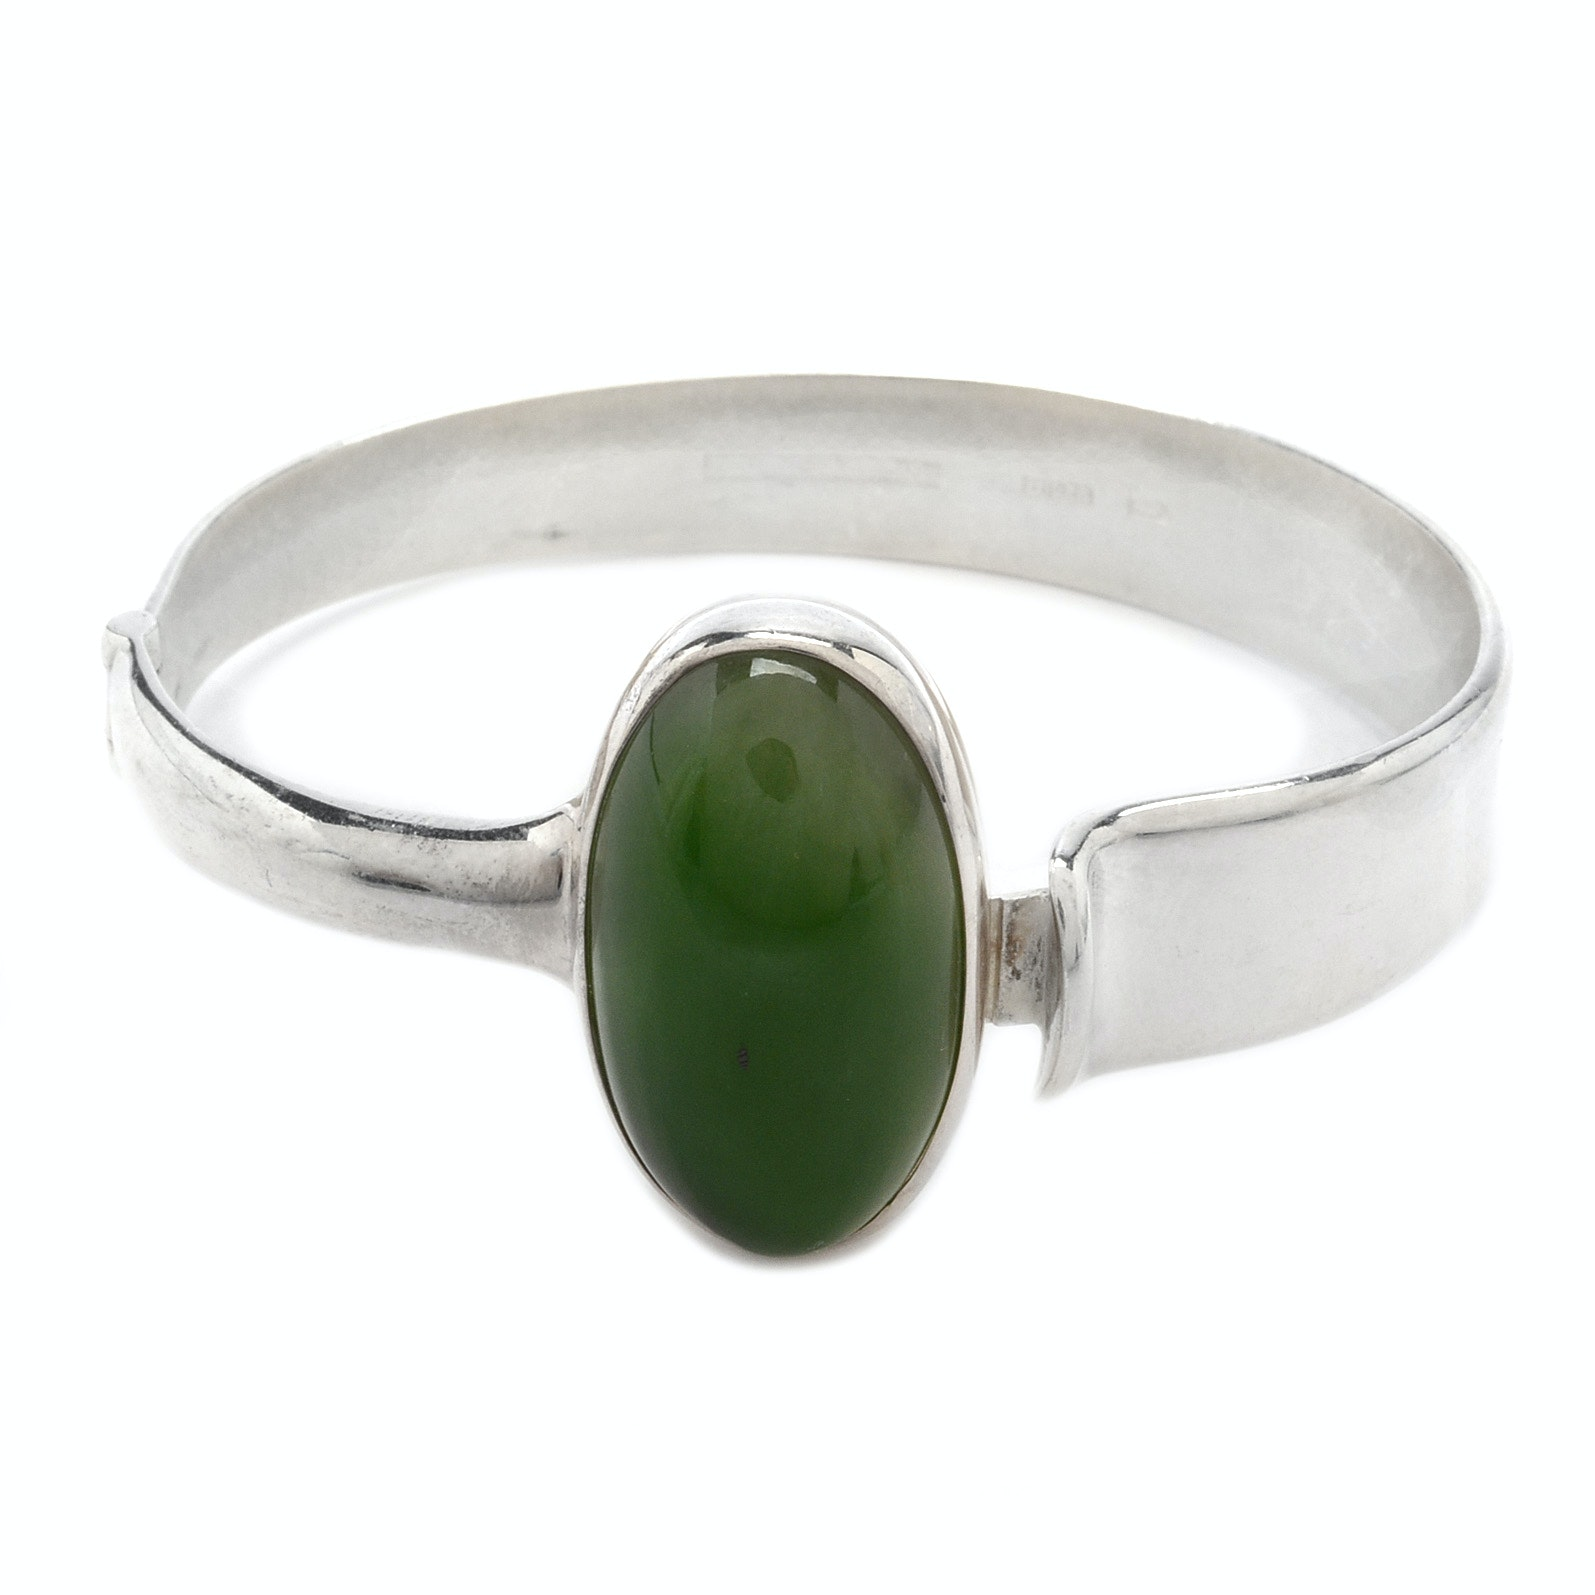 Modernist Sterling Silver and Nephrite Bracelet from Finland